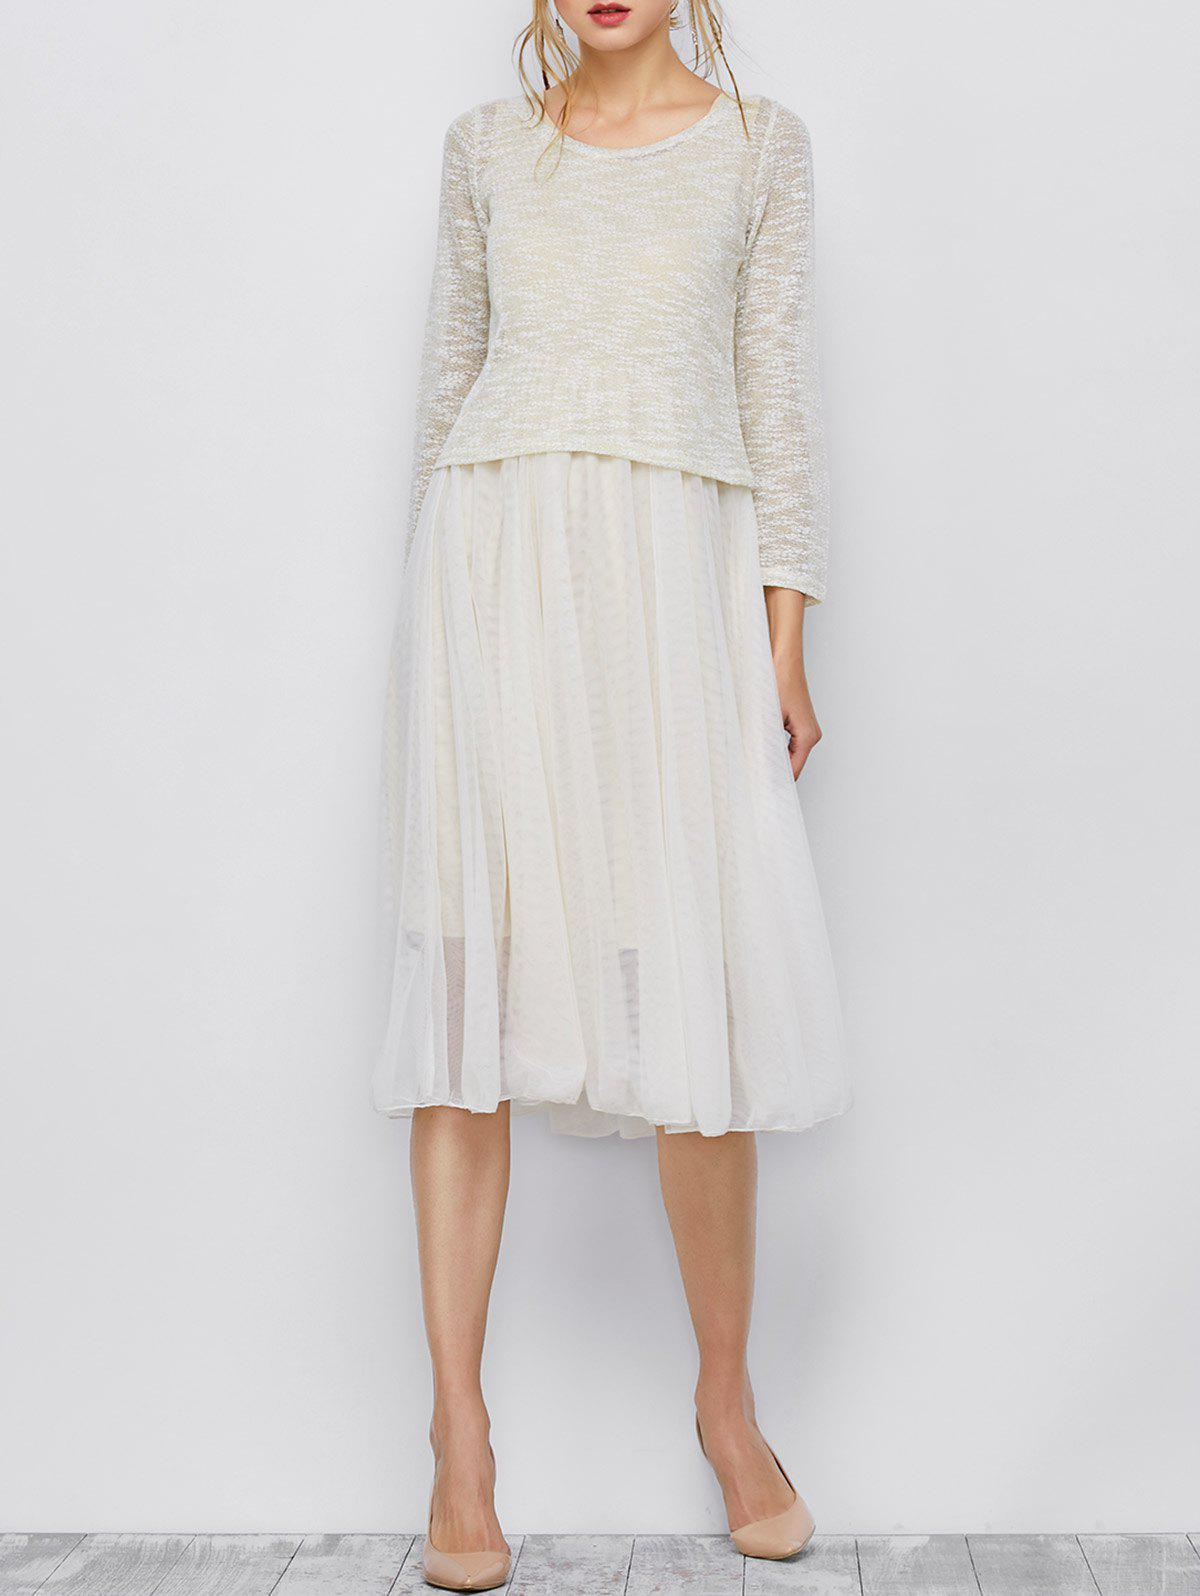 Hot Long Sleeve Top and Midi Tulle Dress